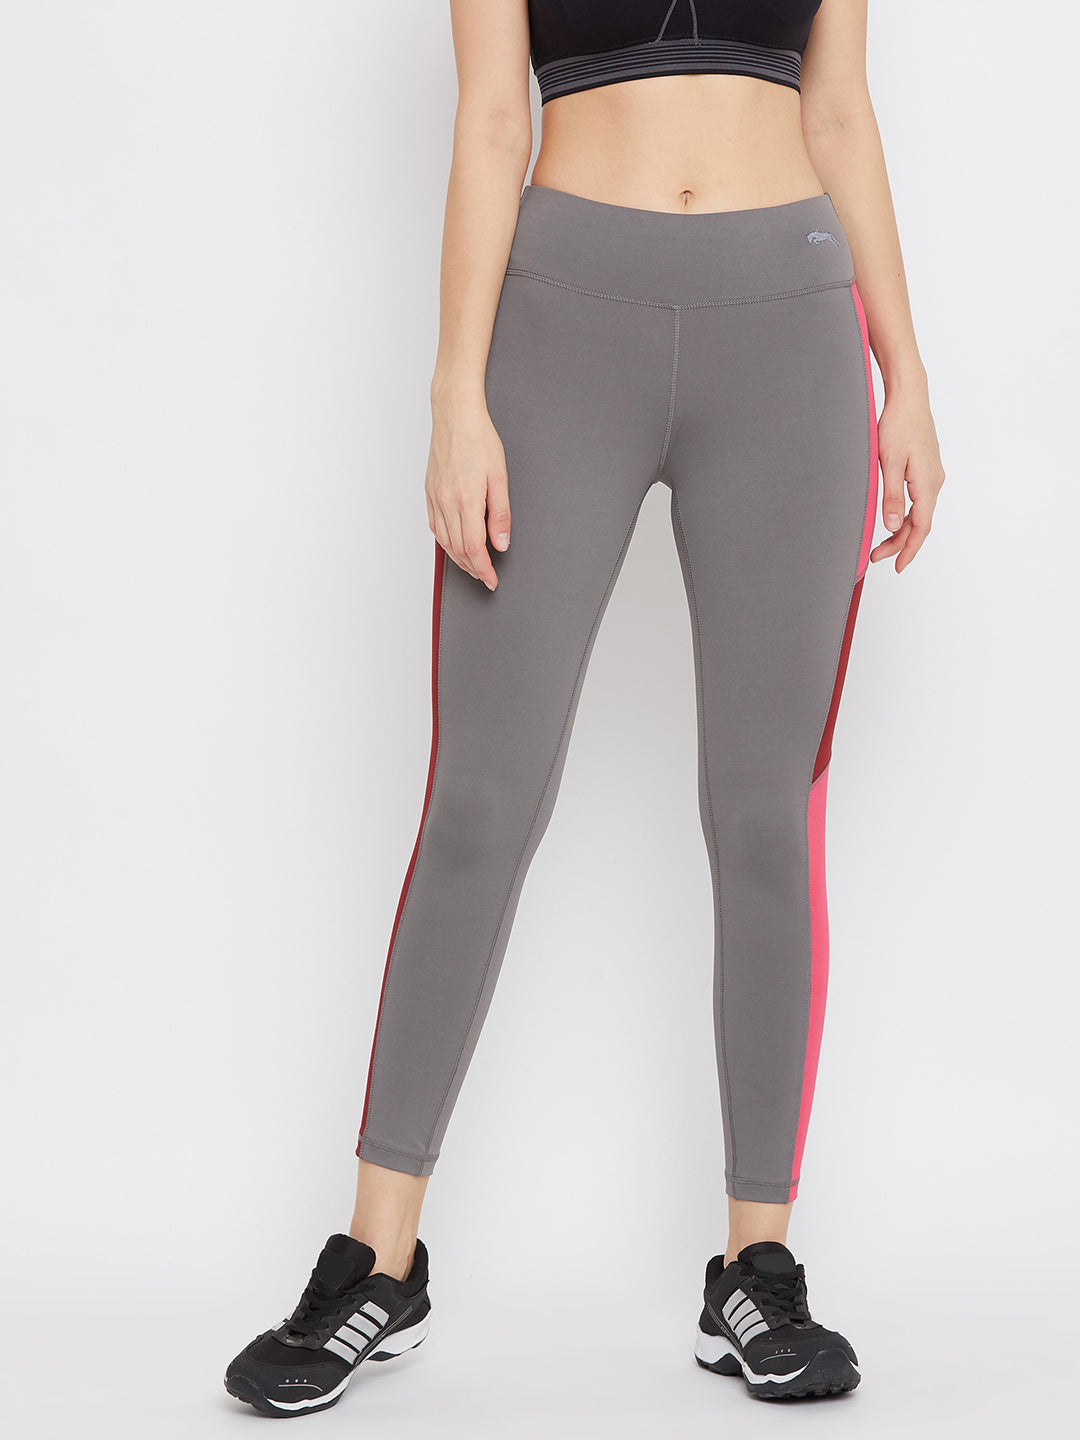 JUMP USA Women Grey & Pink Solid Active Wear Tights